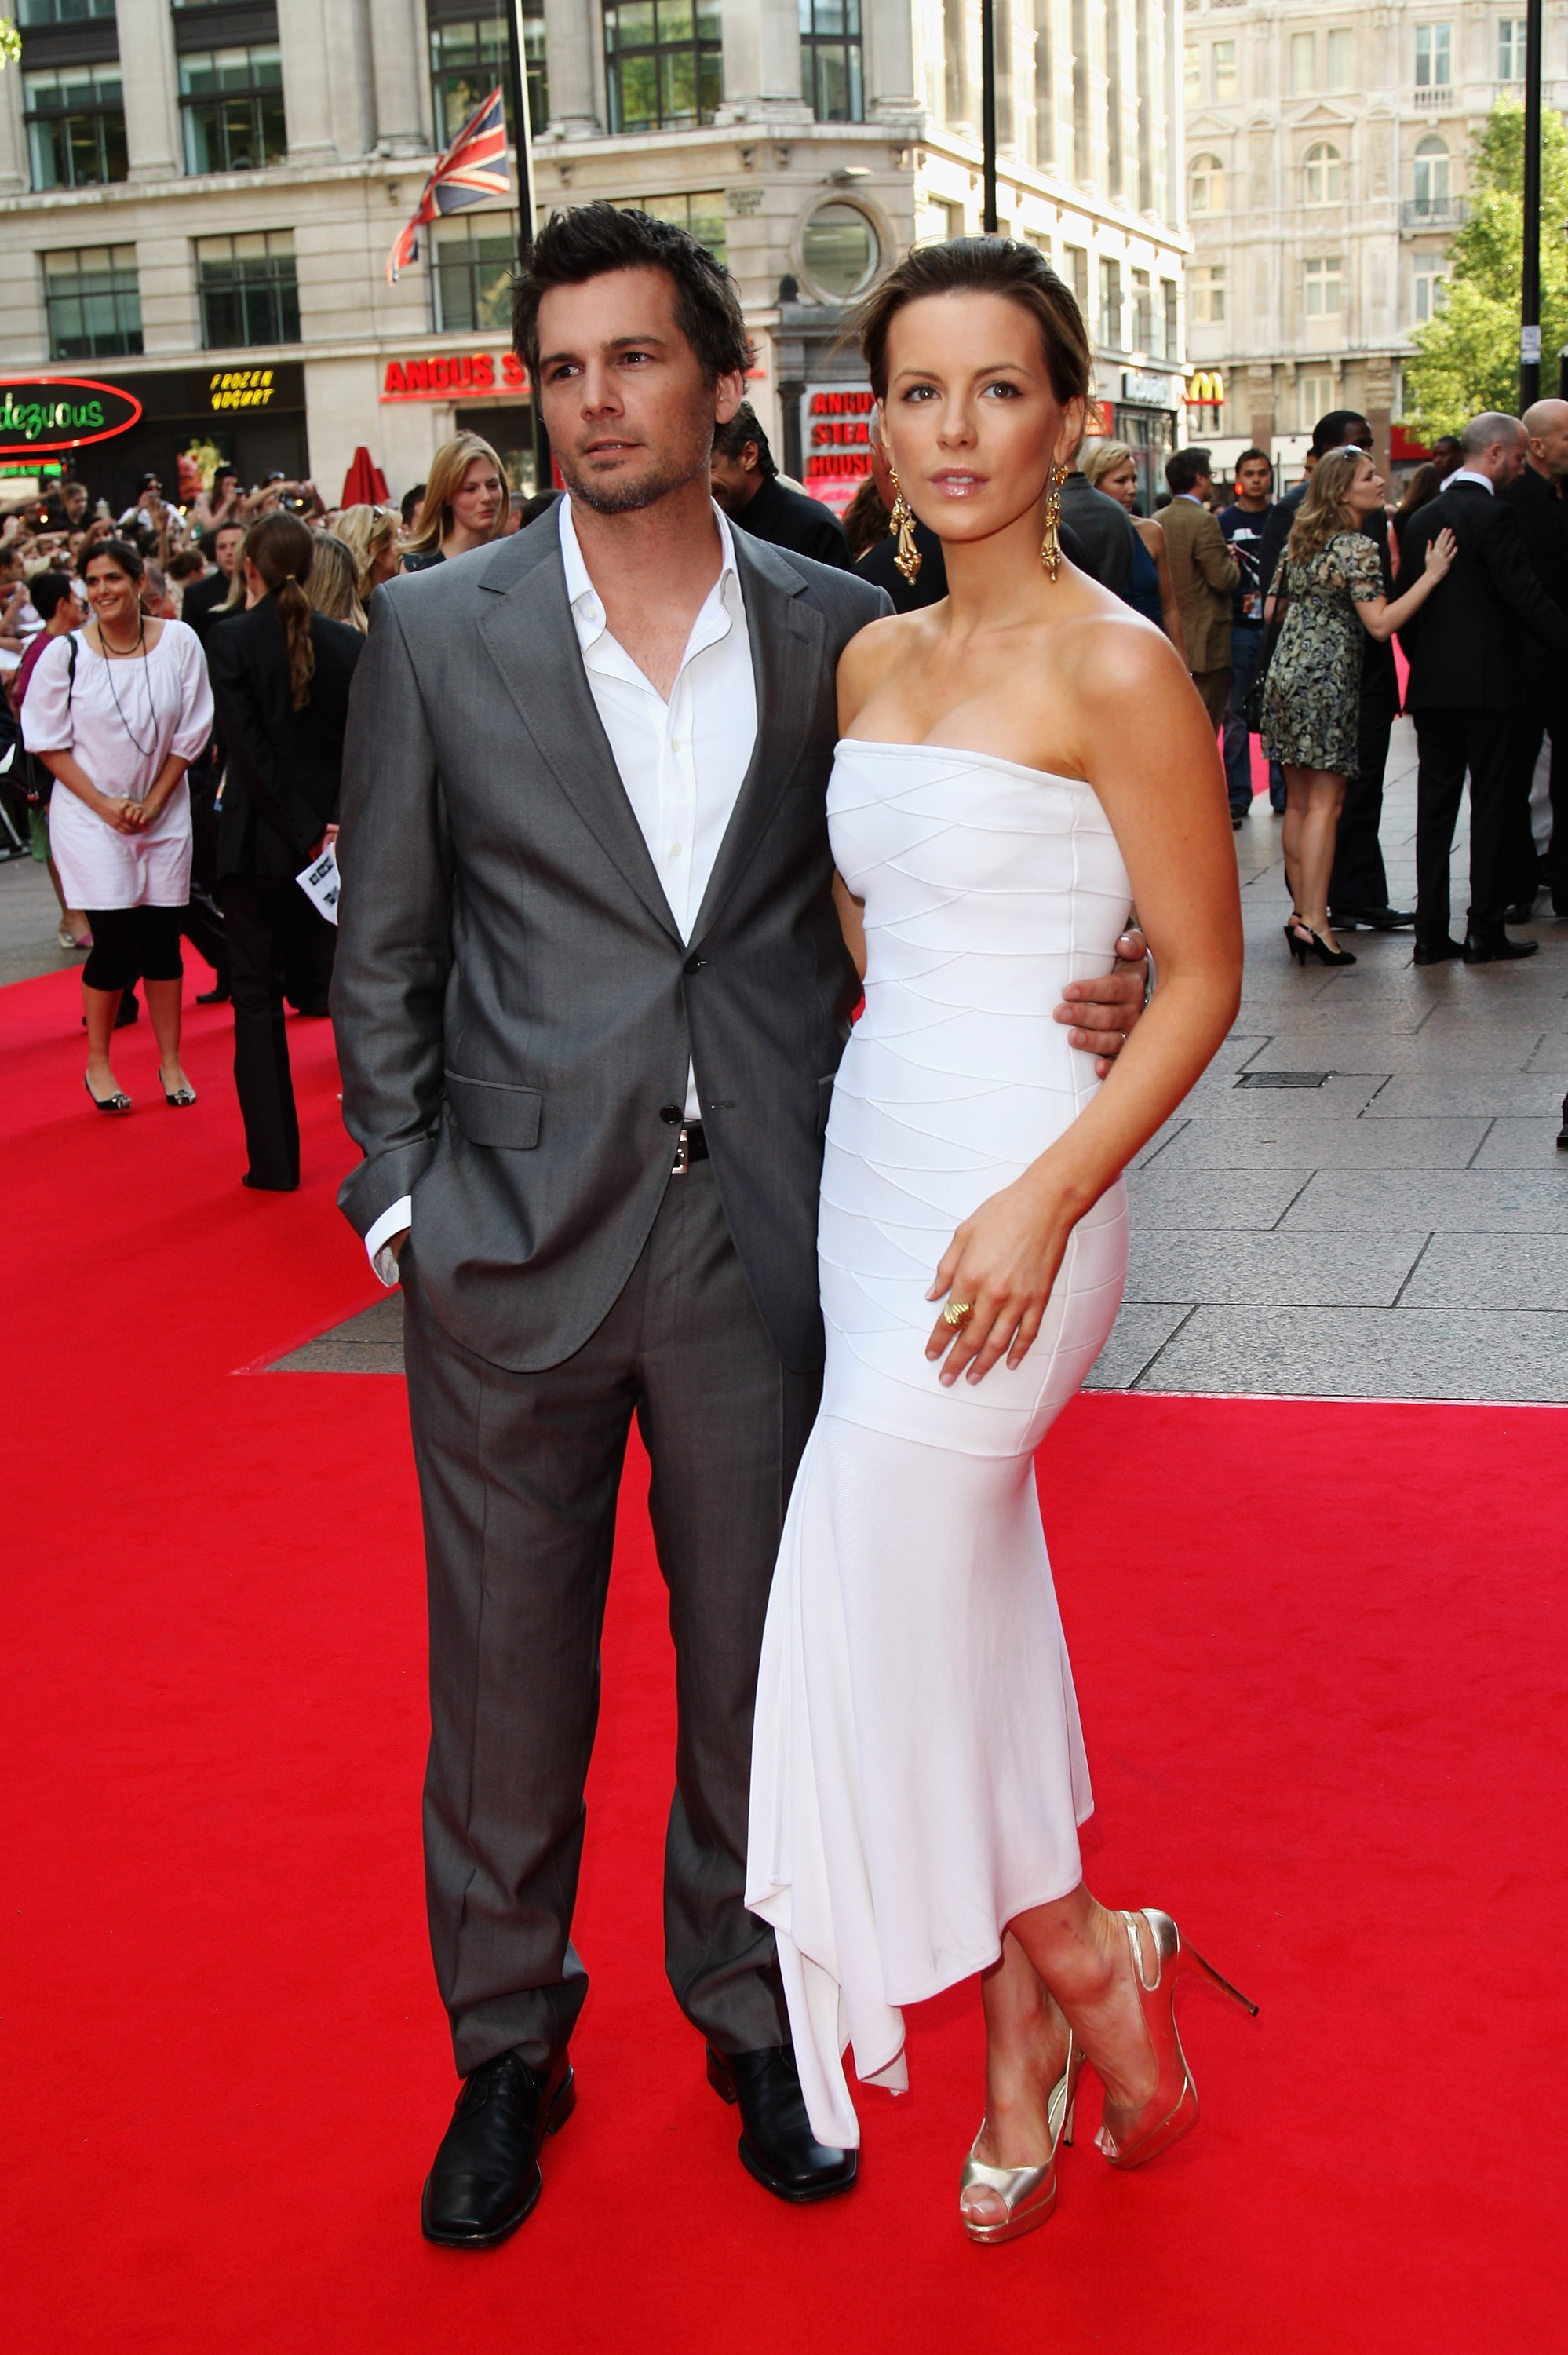 LONDON - JUNE 20:  Director Len Wiseman and actress Kate Beckinsale attend the UK premiere of 'Die Hard 4.0' held at the Empire Leicester Square on June 20th, 2007 in London, England.  (Photo by MJ Kim/Getty Images)